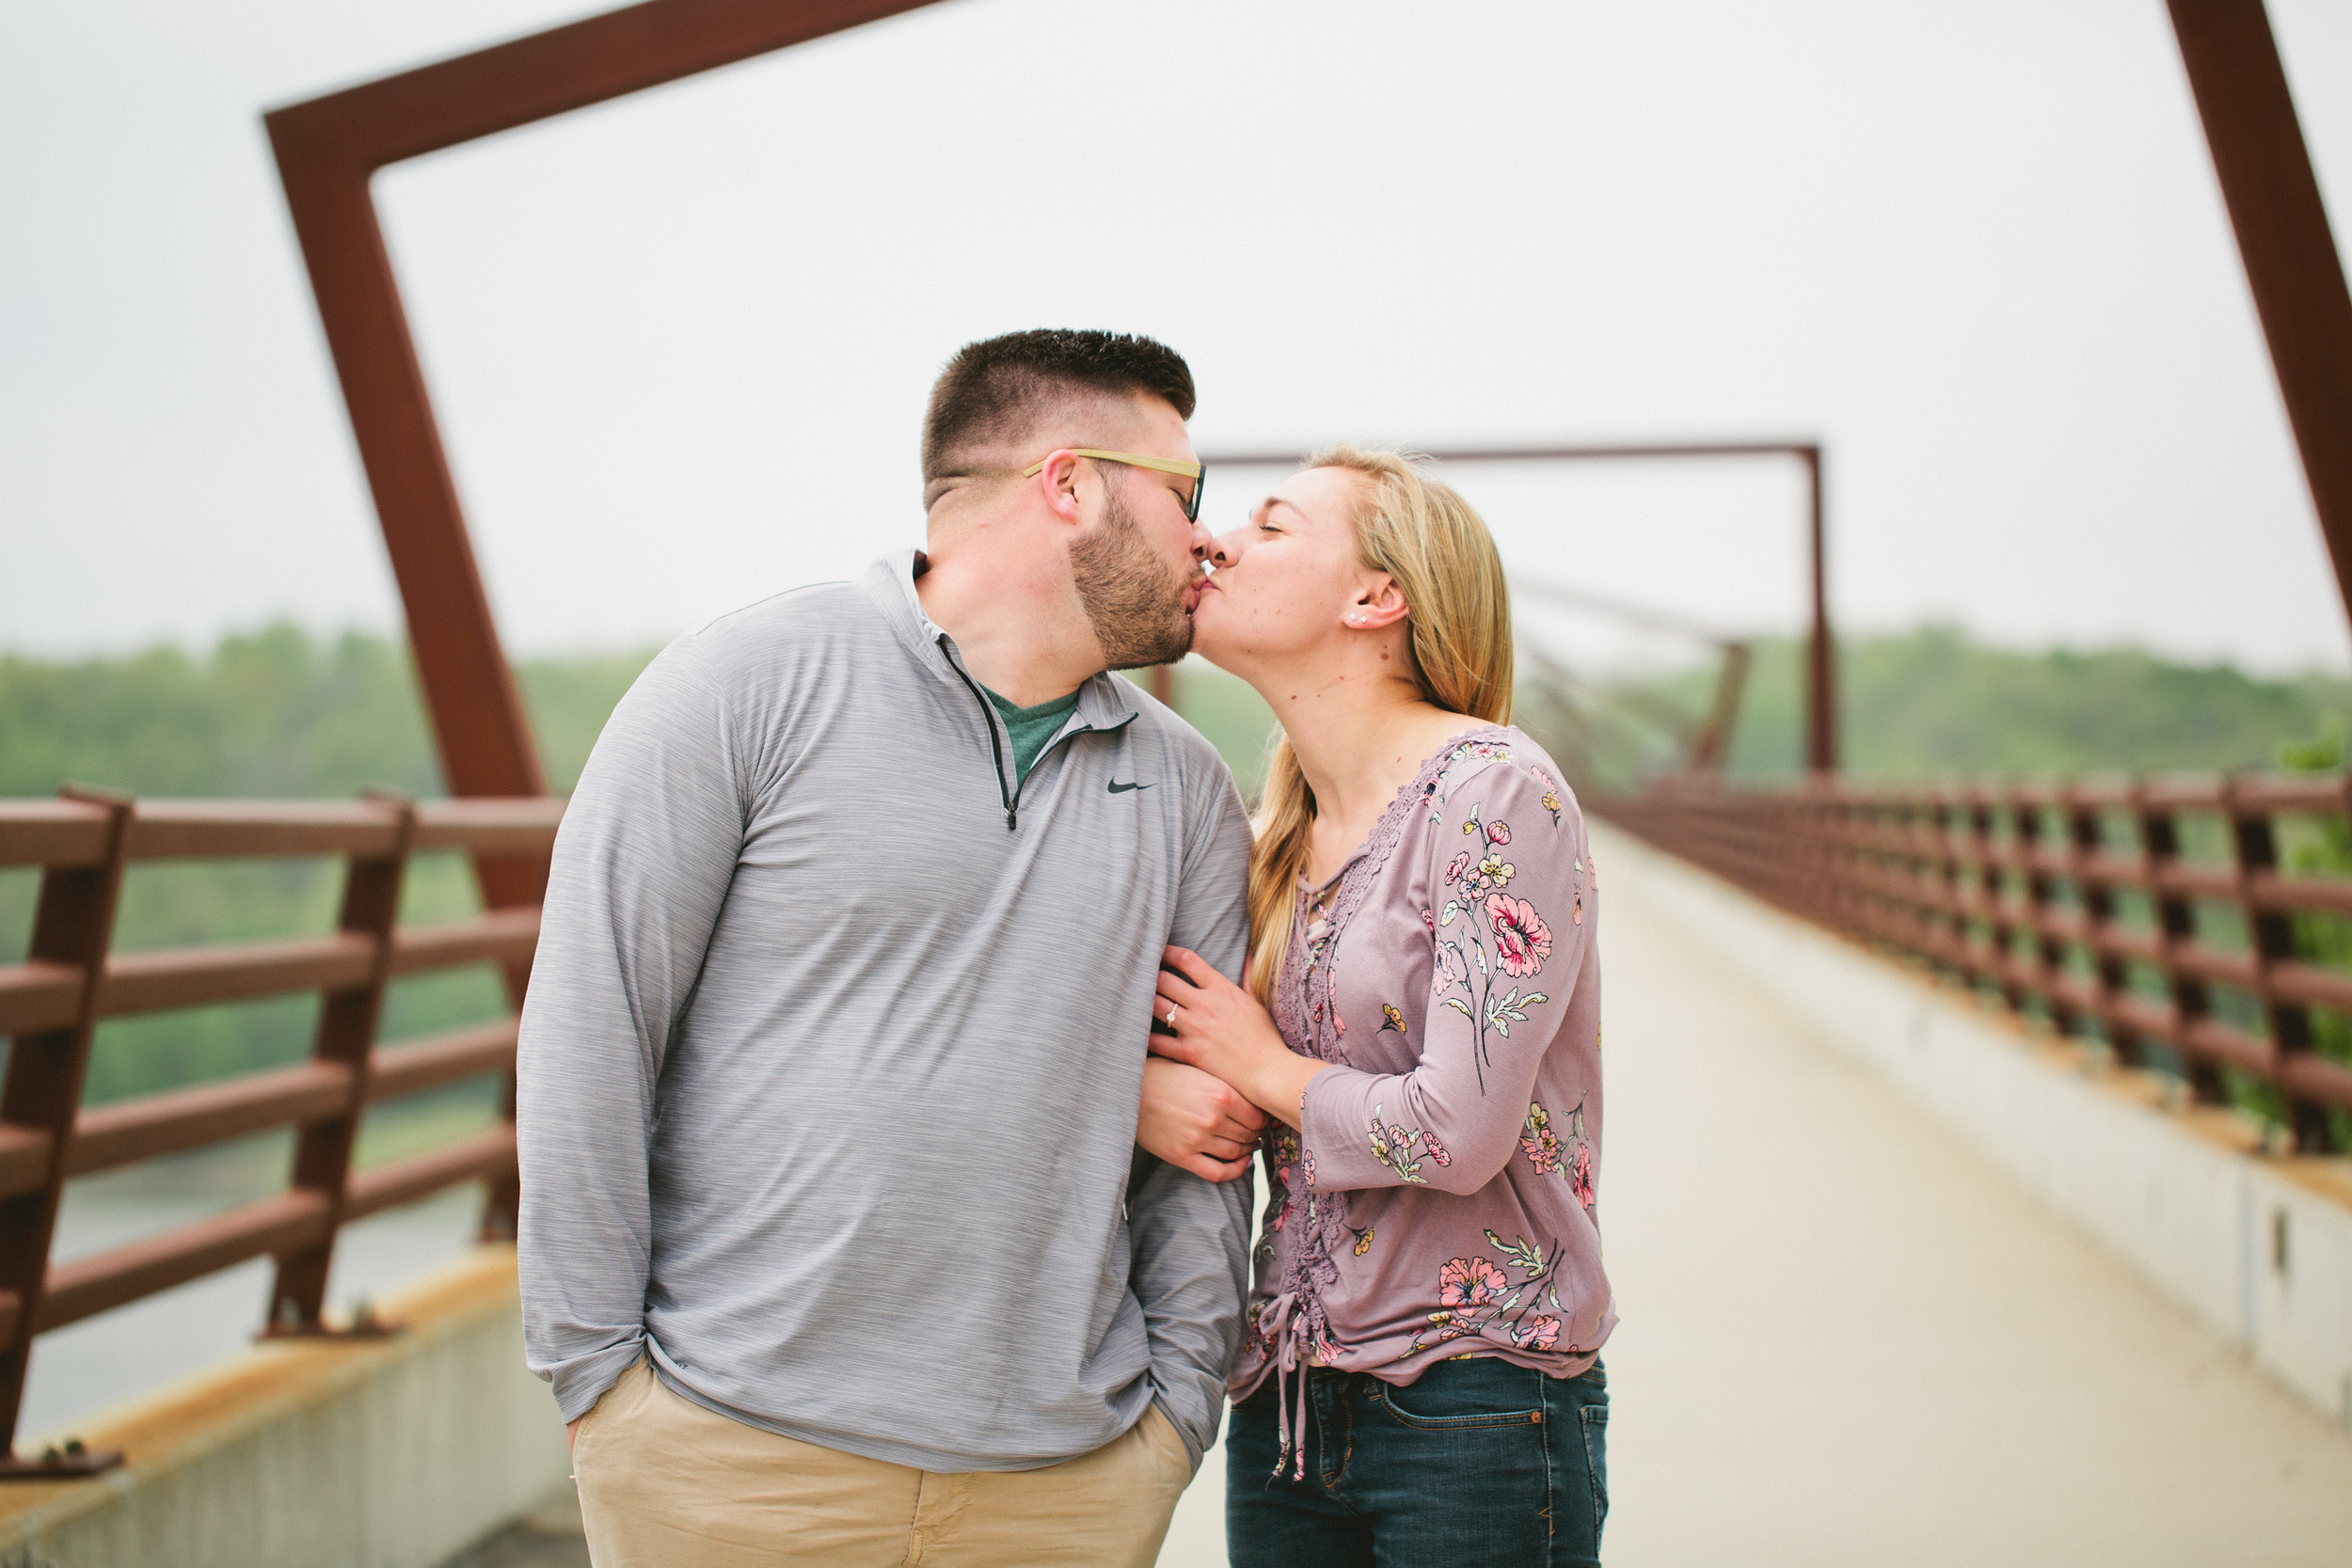 Julia was pretty over the moon excited! She didn't stop beaming after Rich proposed to her on the high trestle trail bridge in May!